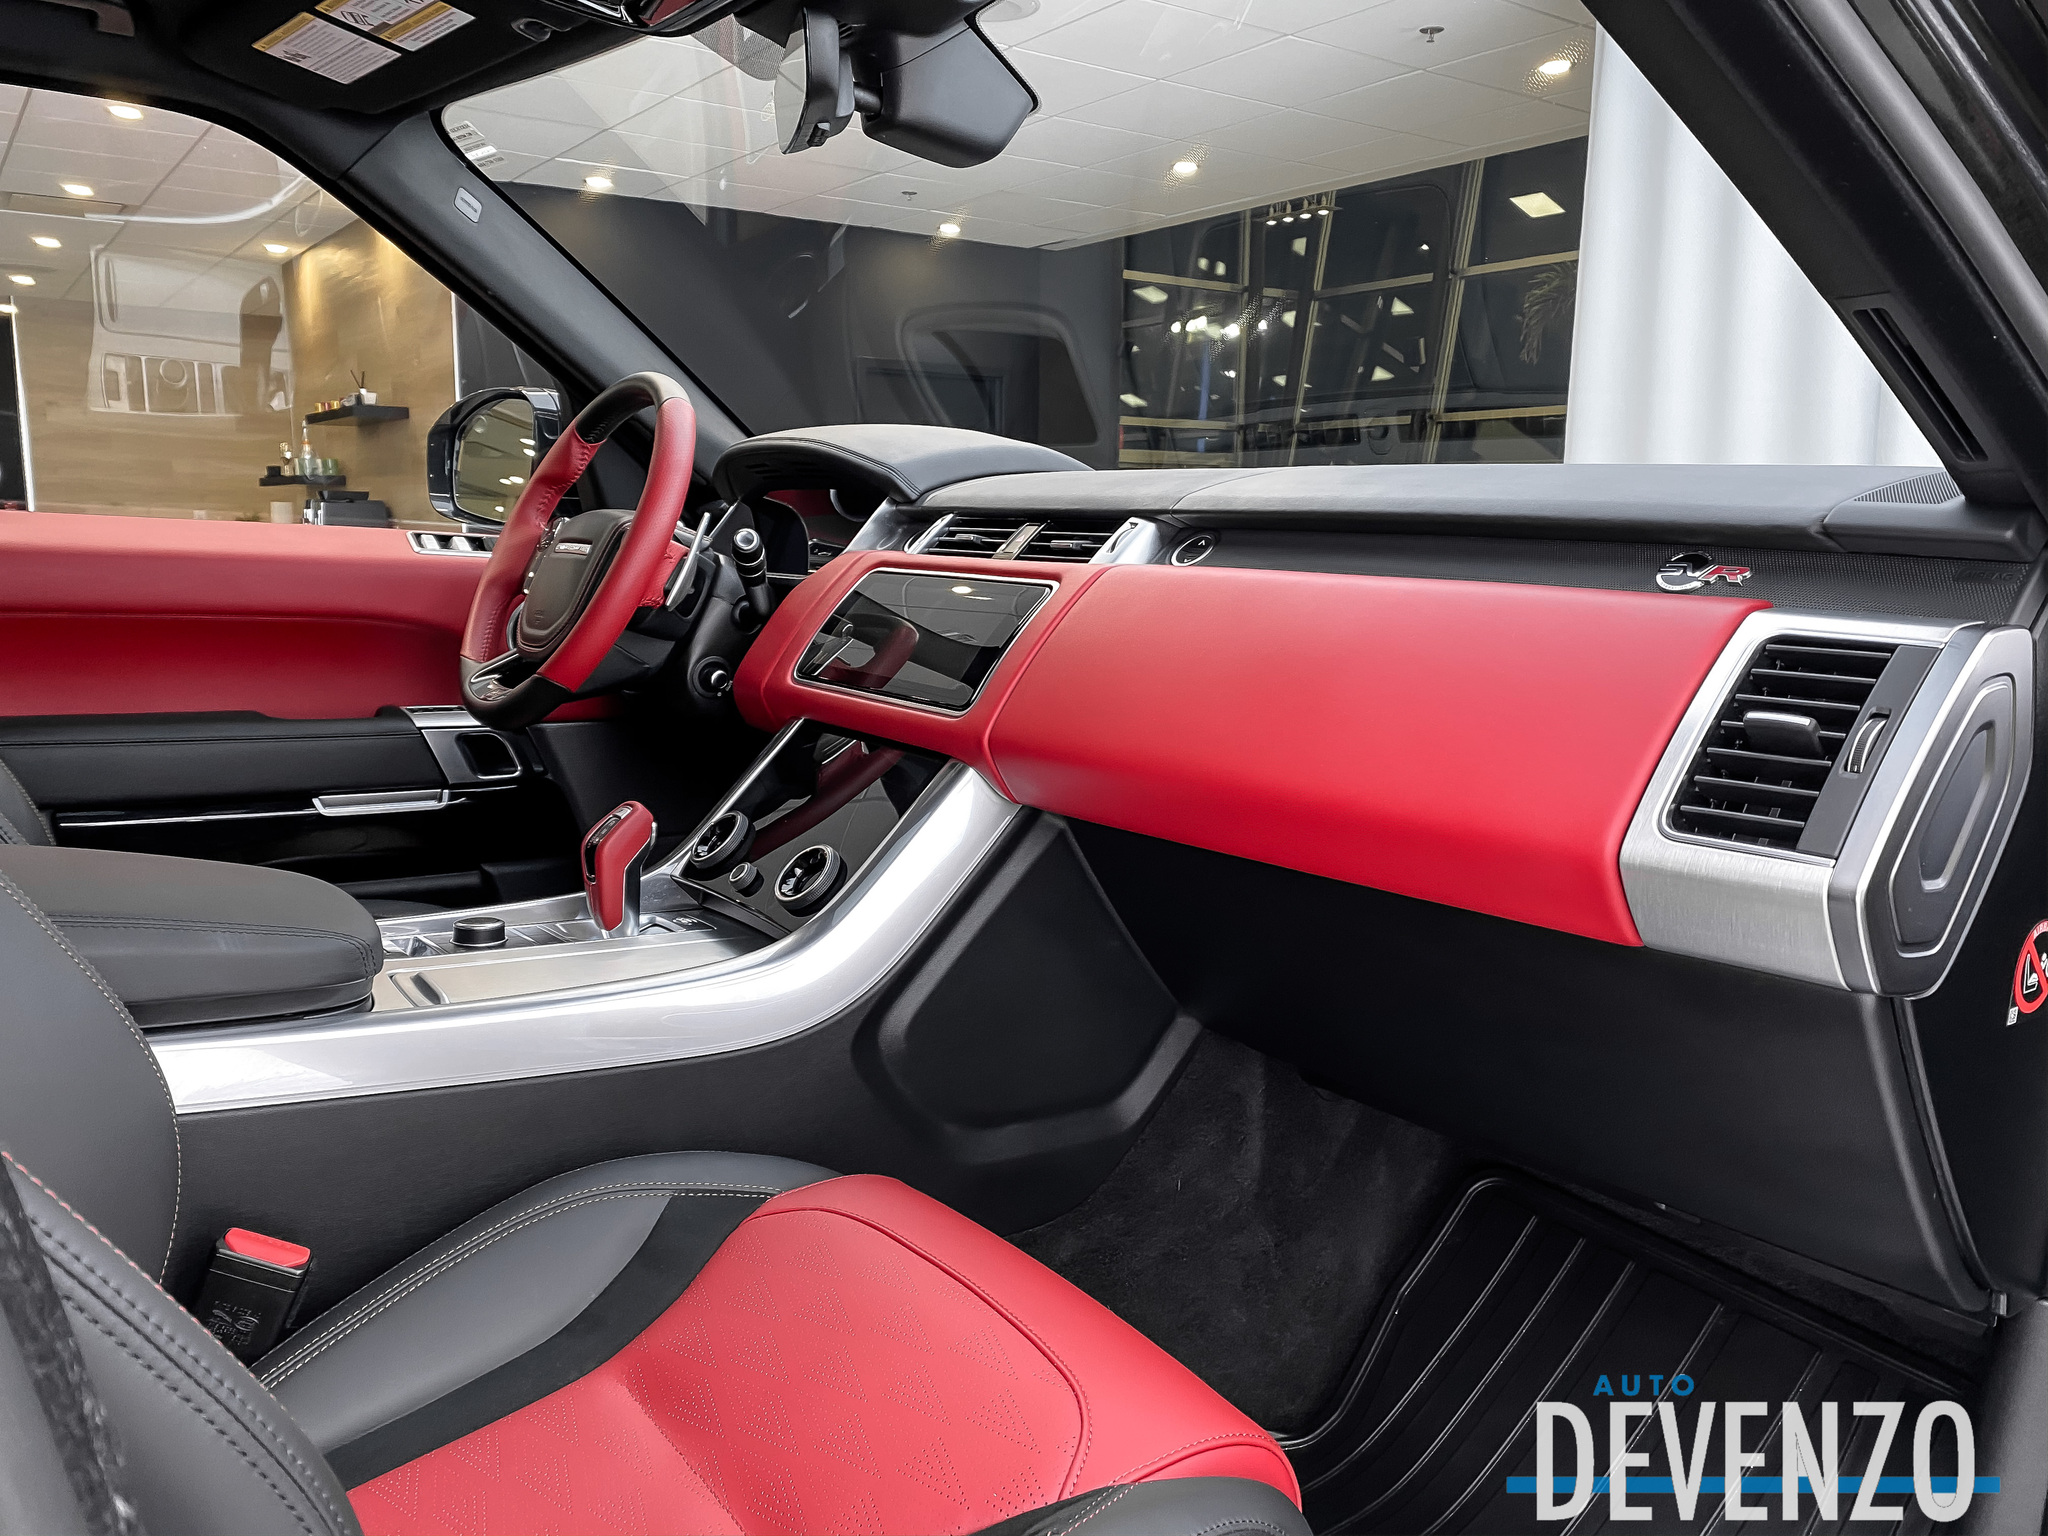 2020 Land Rover Range Rover Sport V8 Supercharged SVR 575HP Drive Pro Pack / Red Int complet